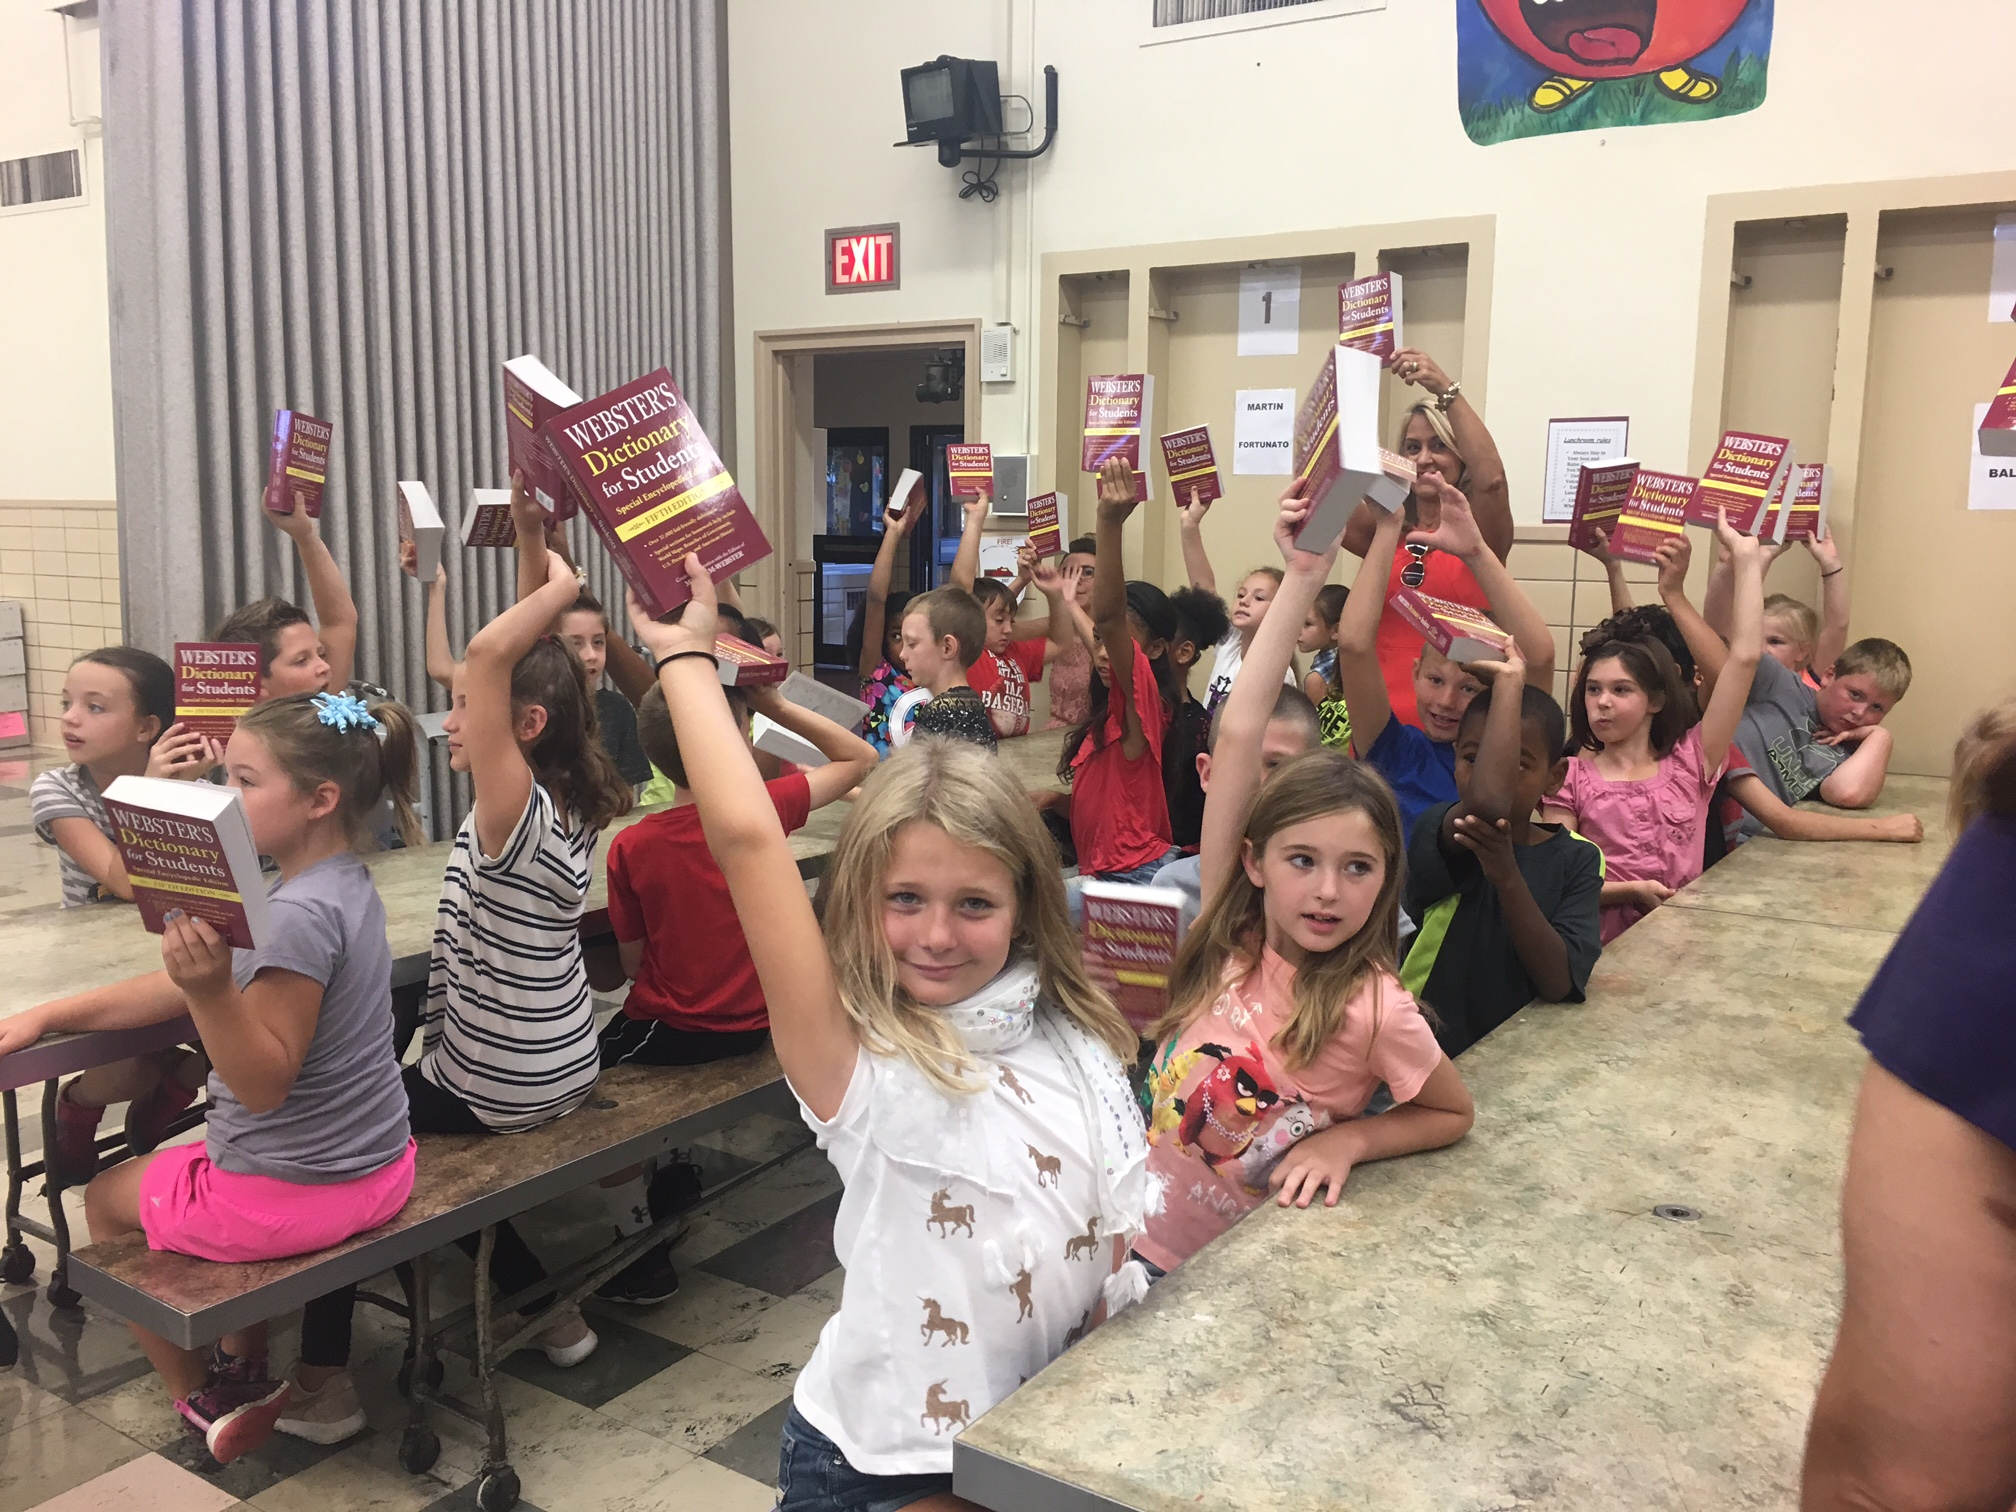 dictionary distribution kids holding books in air